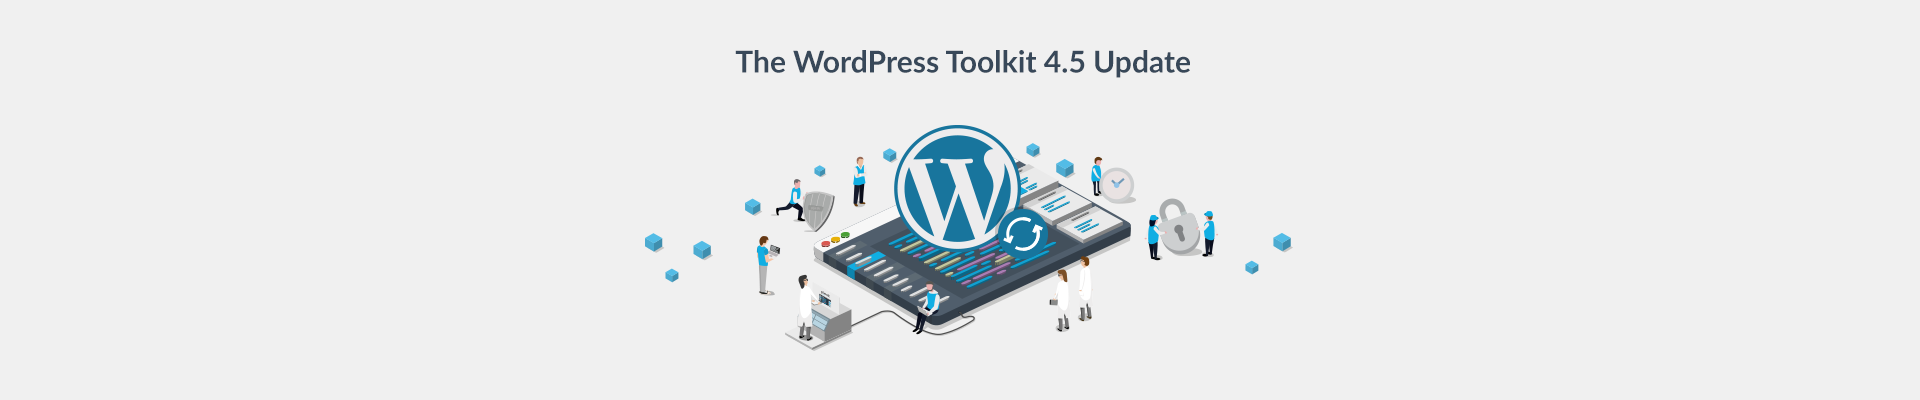 WordPress Toolkit 4.5 Features Website Labels Among Improvements - Plesk